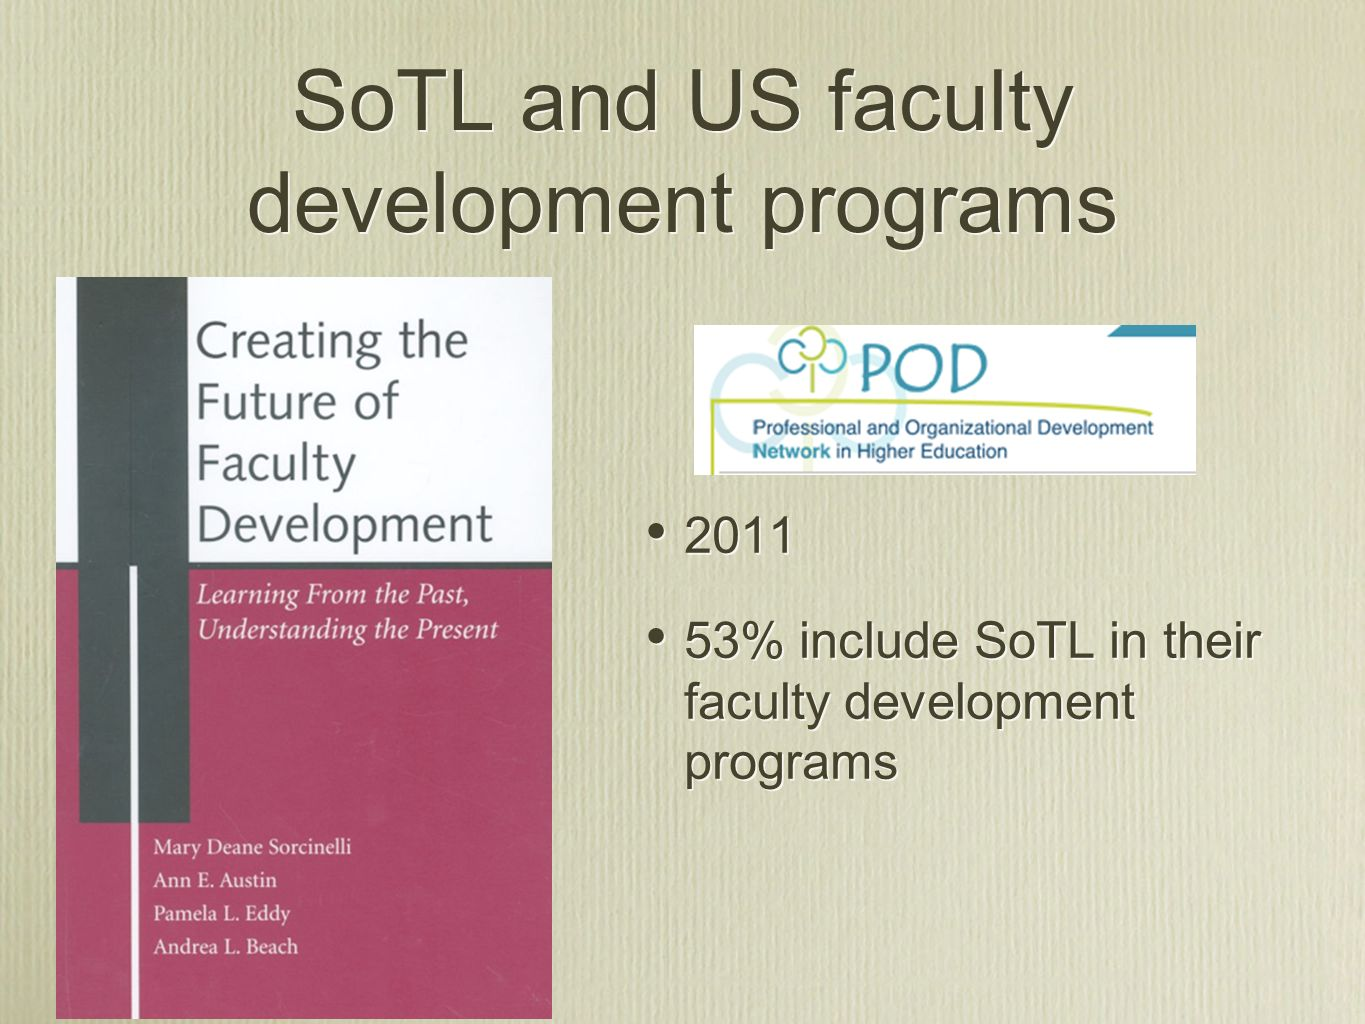 SoTL and US faculty development programs